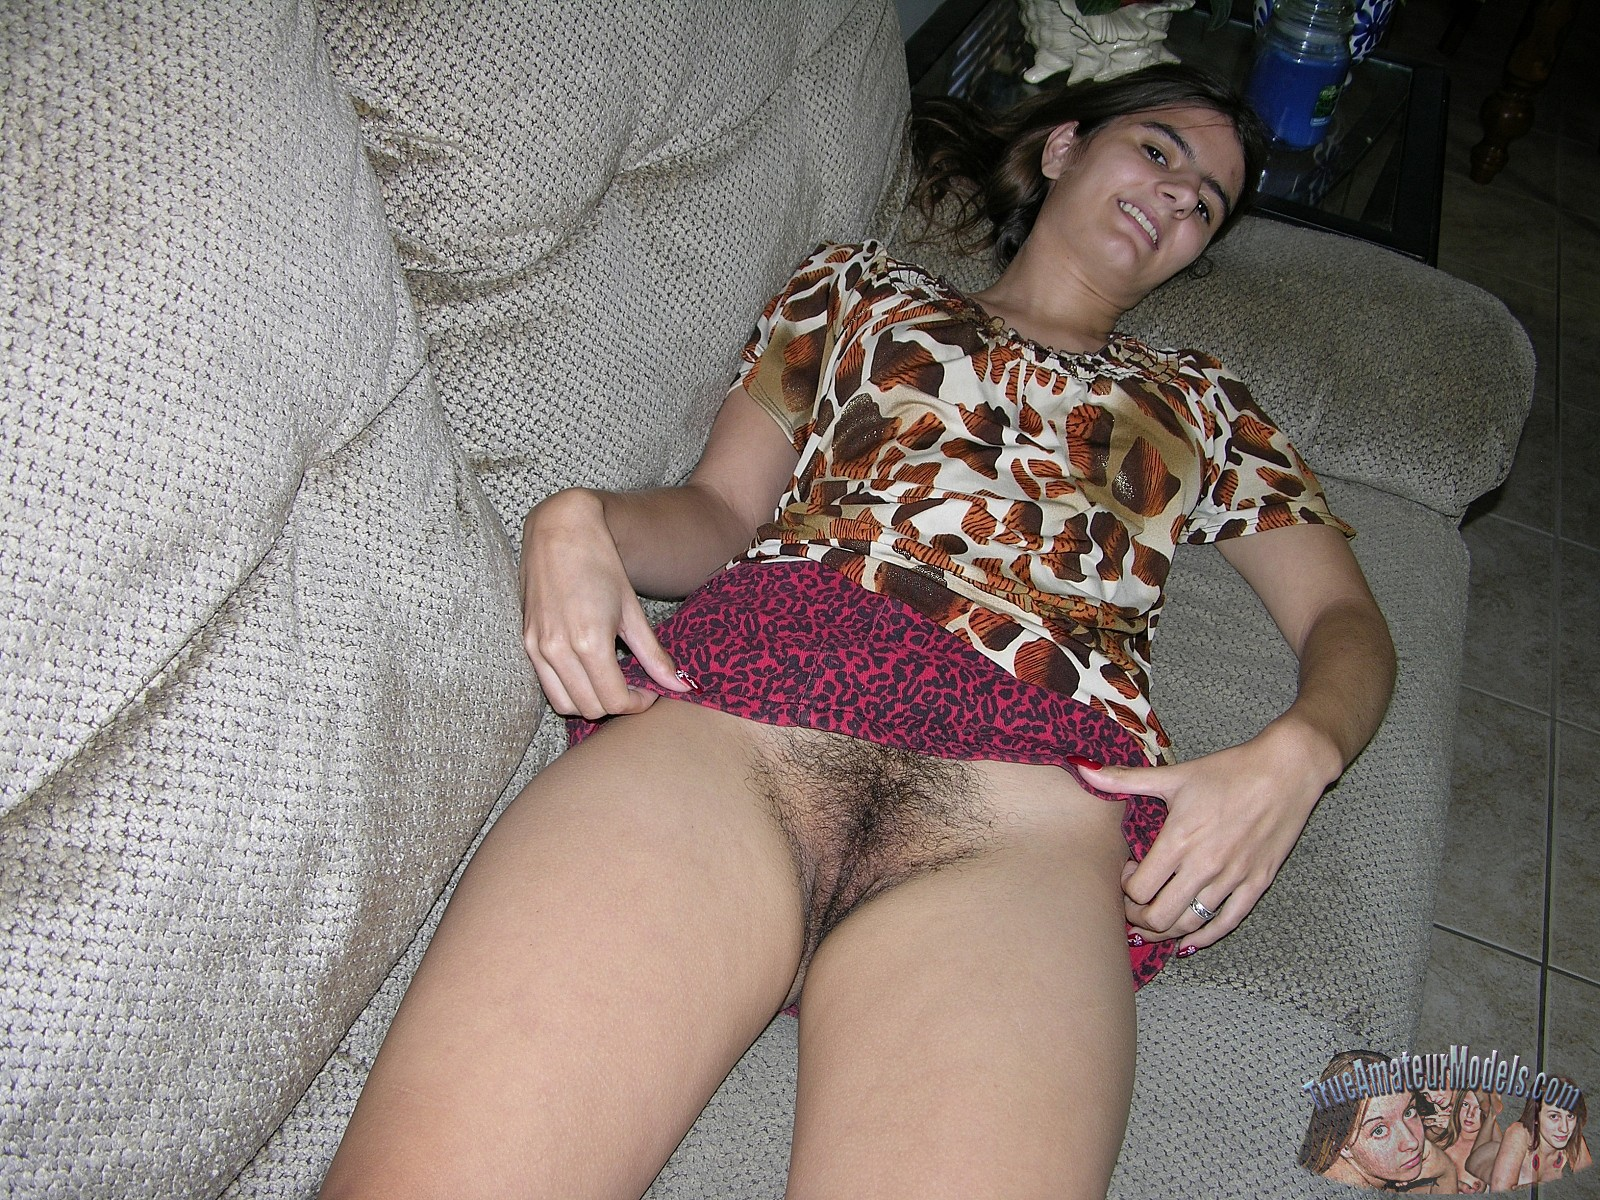 Amature upskirt pussy pictures the